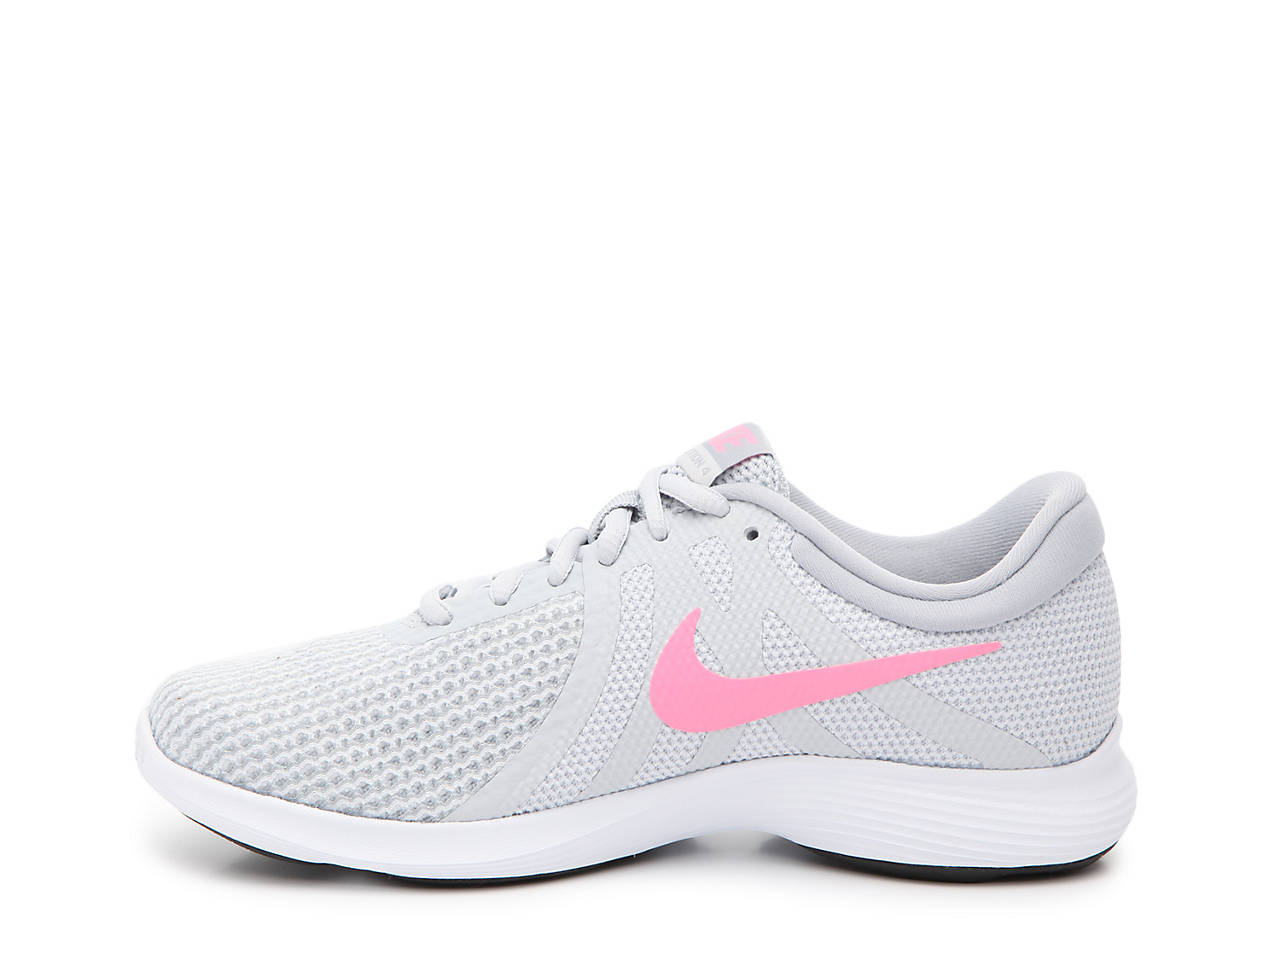 ec054870e54ae Nike Revolution 4 Lightweight Running Shoe - Women s Women s Shoes